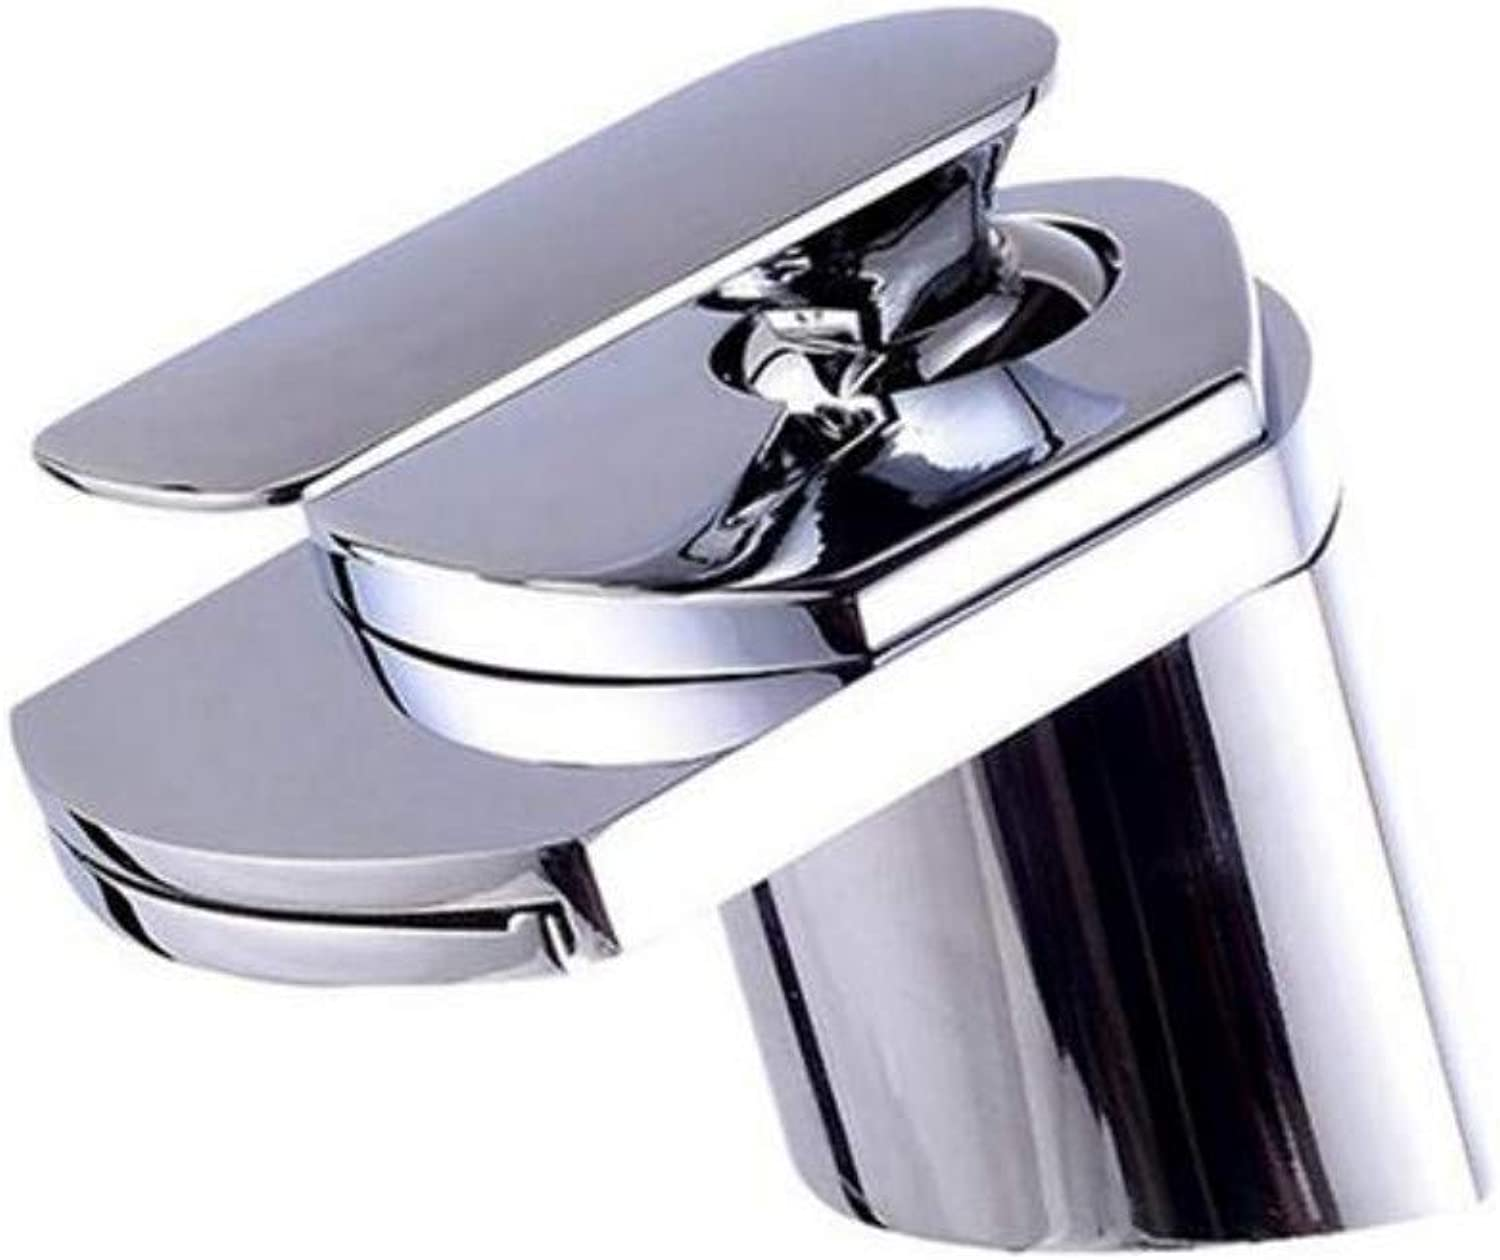 Modern Double Basin Sink Hot and Cold Water Faucet Table Basin Faucet Waterfall Wide-Mouth Faucet